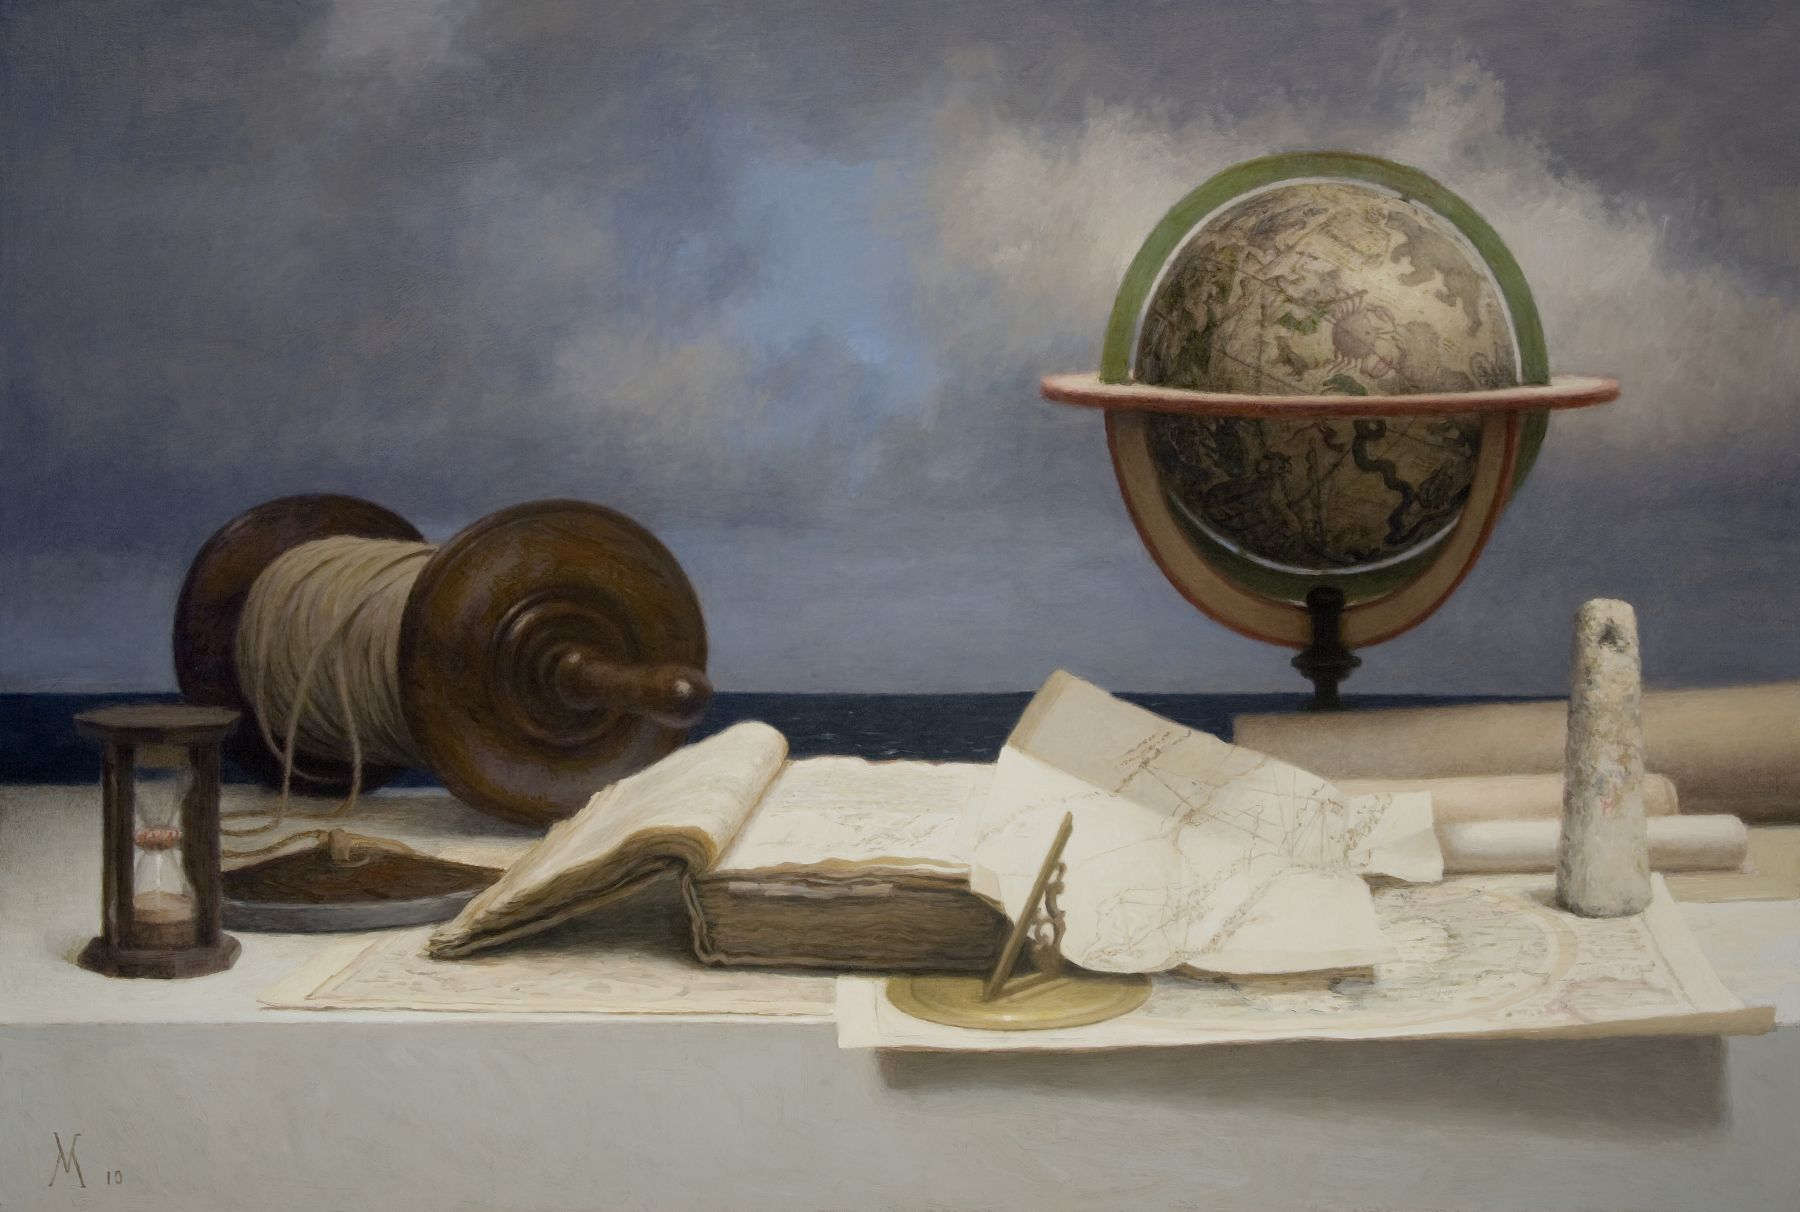 guillermo munoz vera, Navigators, 2010, oil on canvas on panel, 29 1/8 x 43 inches